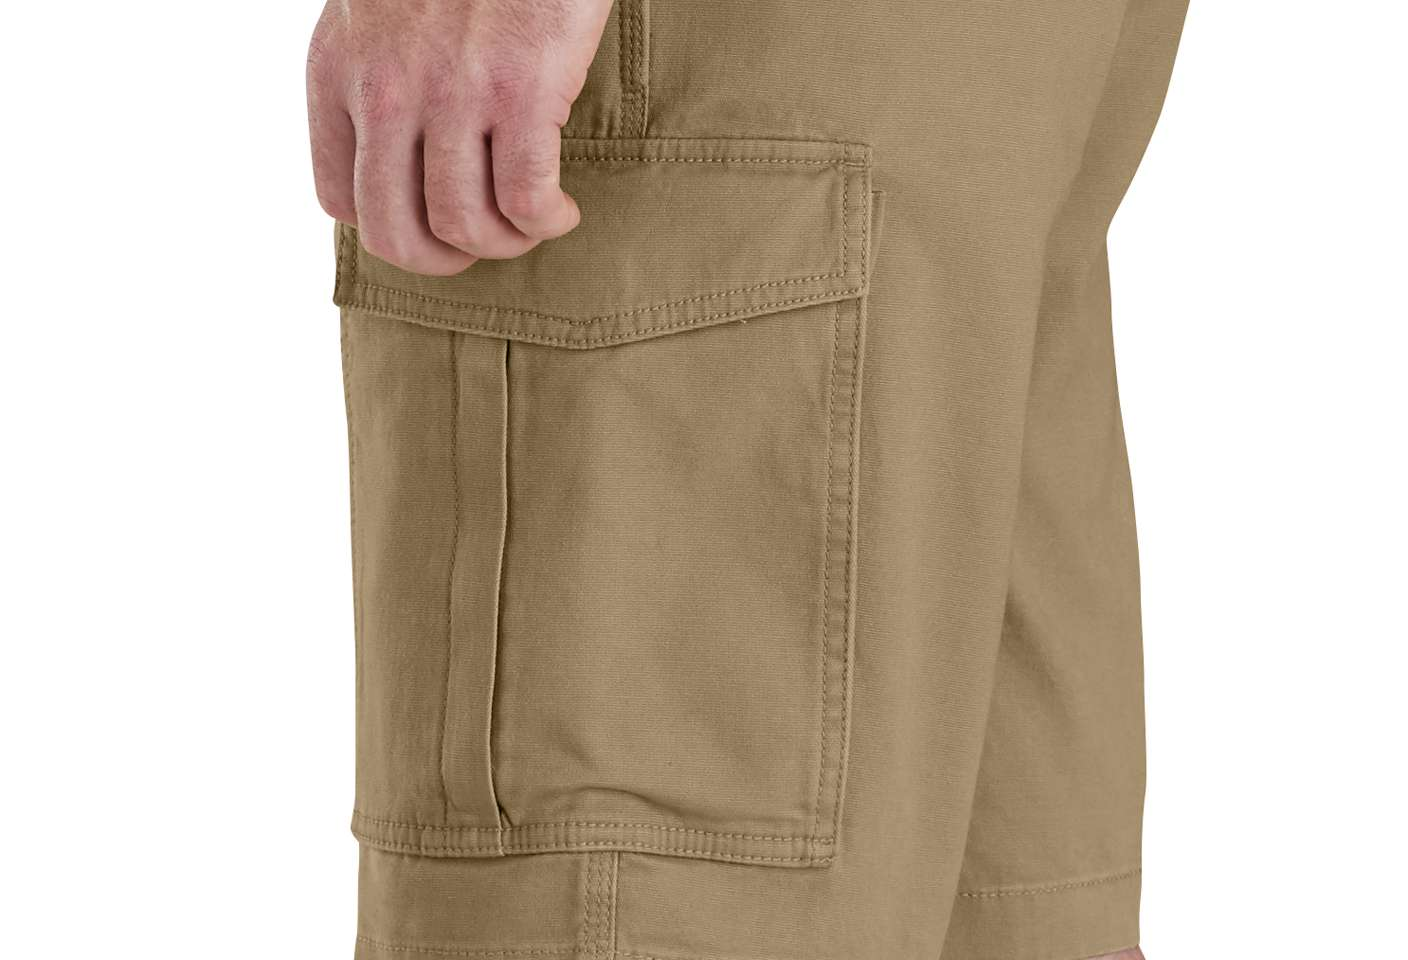 Cargo pocket with cell phone slot for secure storage